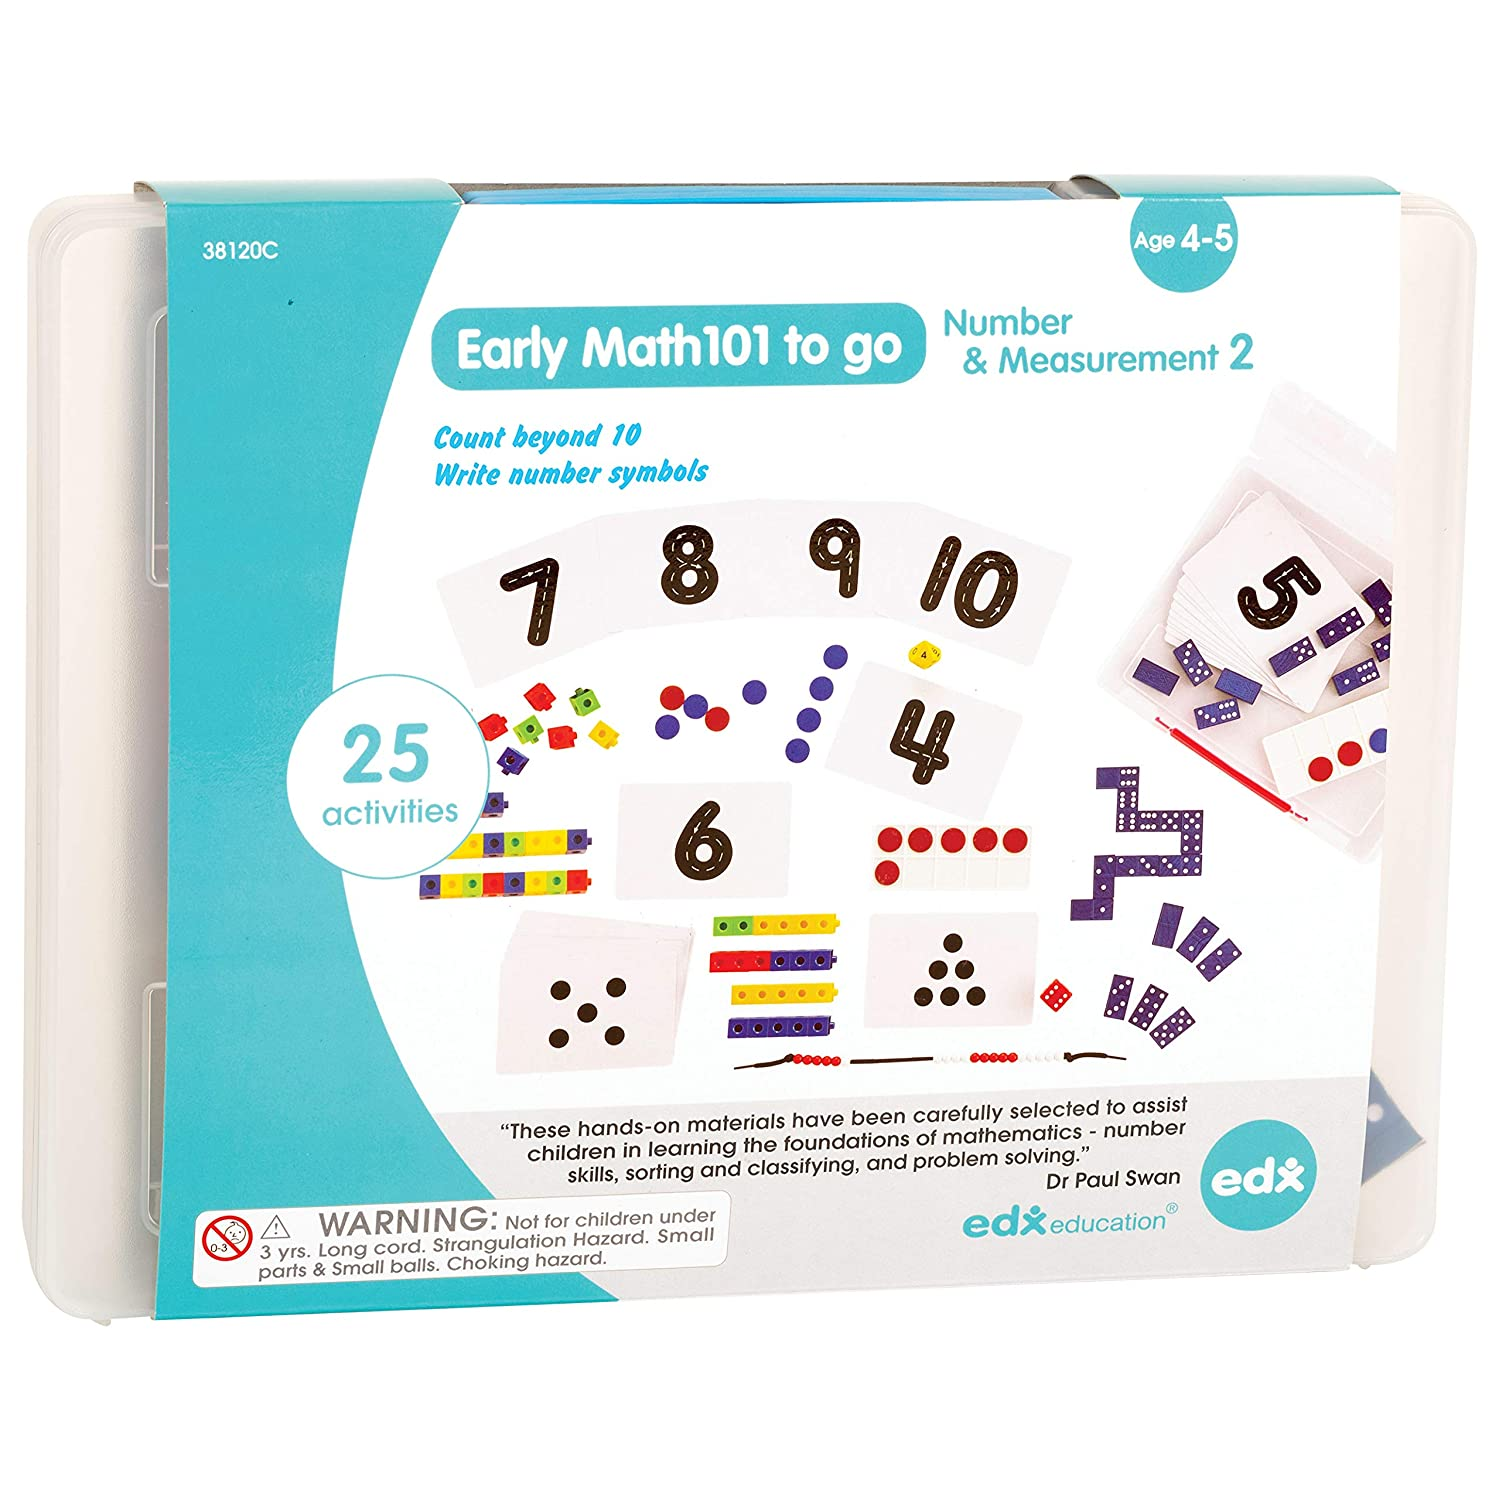 EdxEducation Early Math101 to go - Ages 4-5 - Number & Measurement - in Home Learning Kit for Kids - Homeschool Math Resources with 25+ Guided Activities